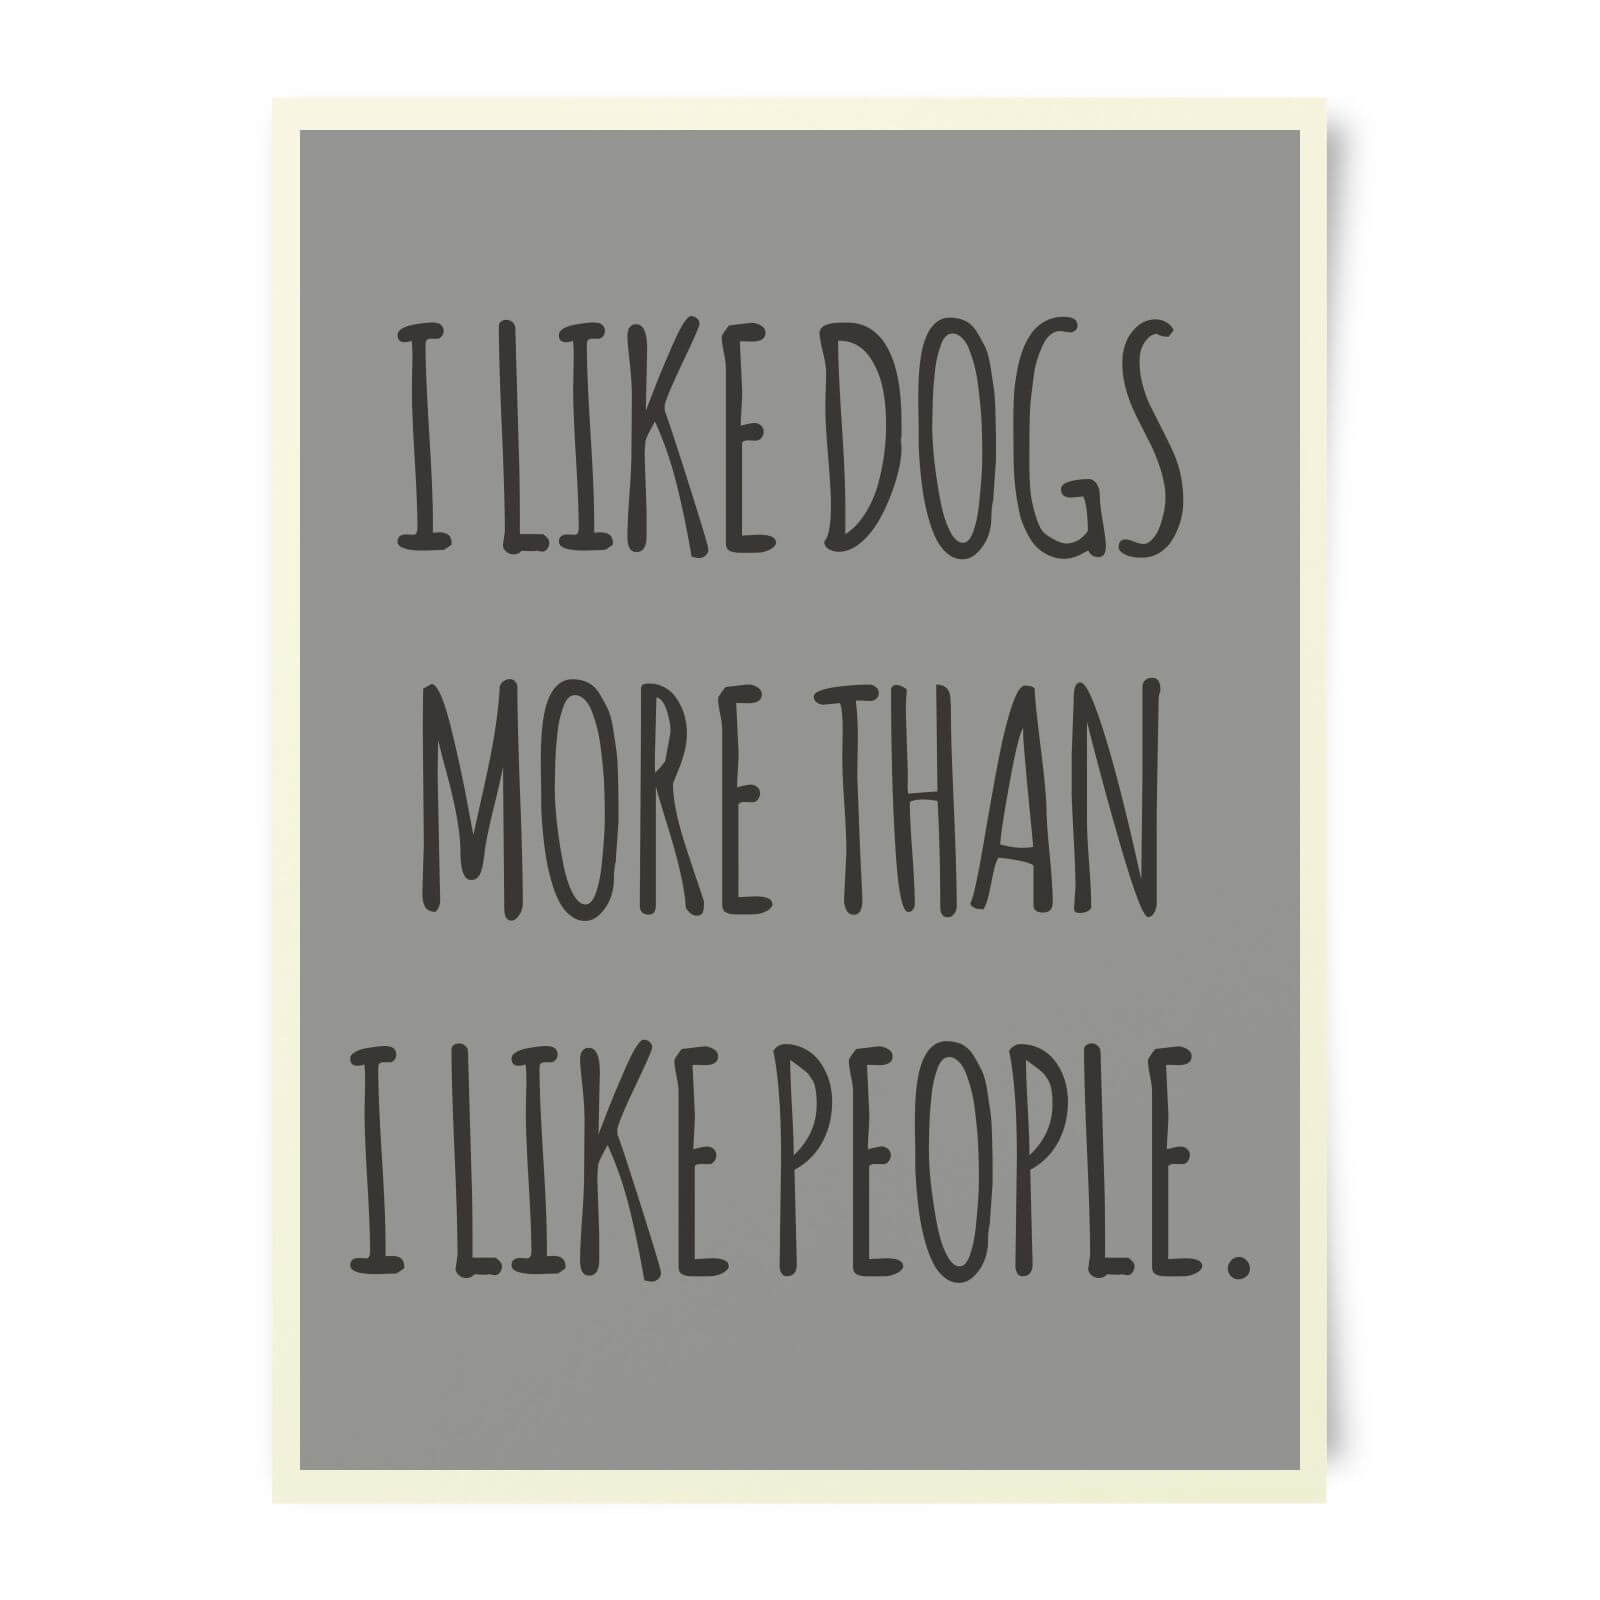 I Like Dogs More Than People Art Print